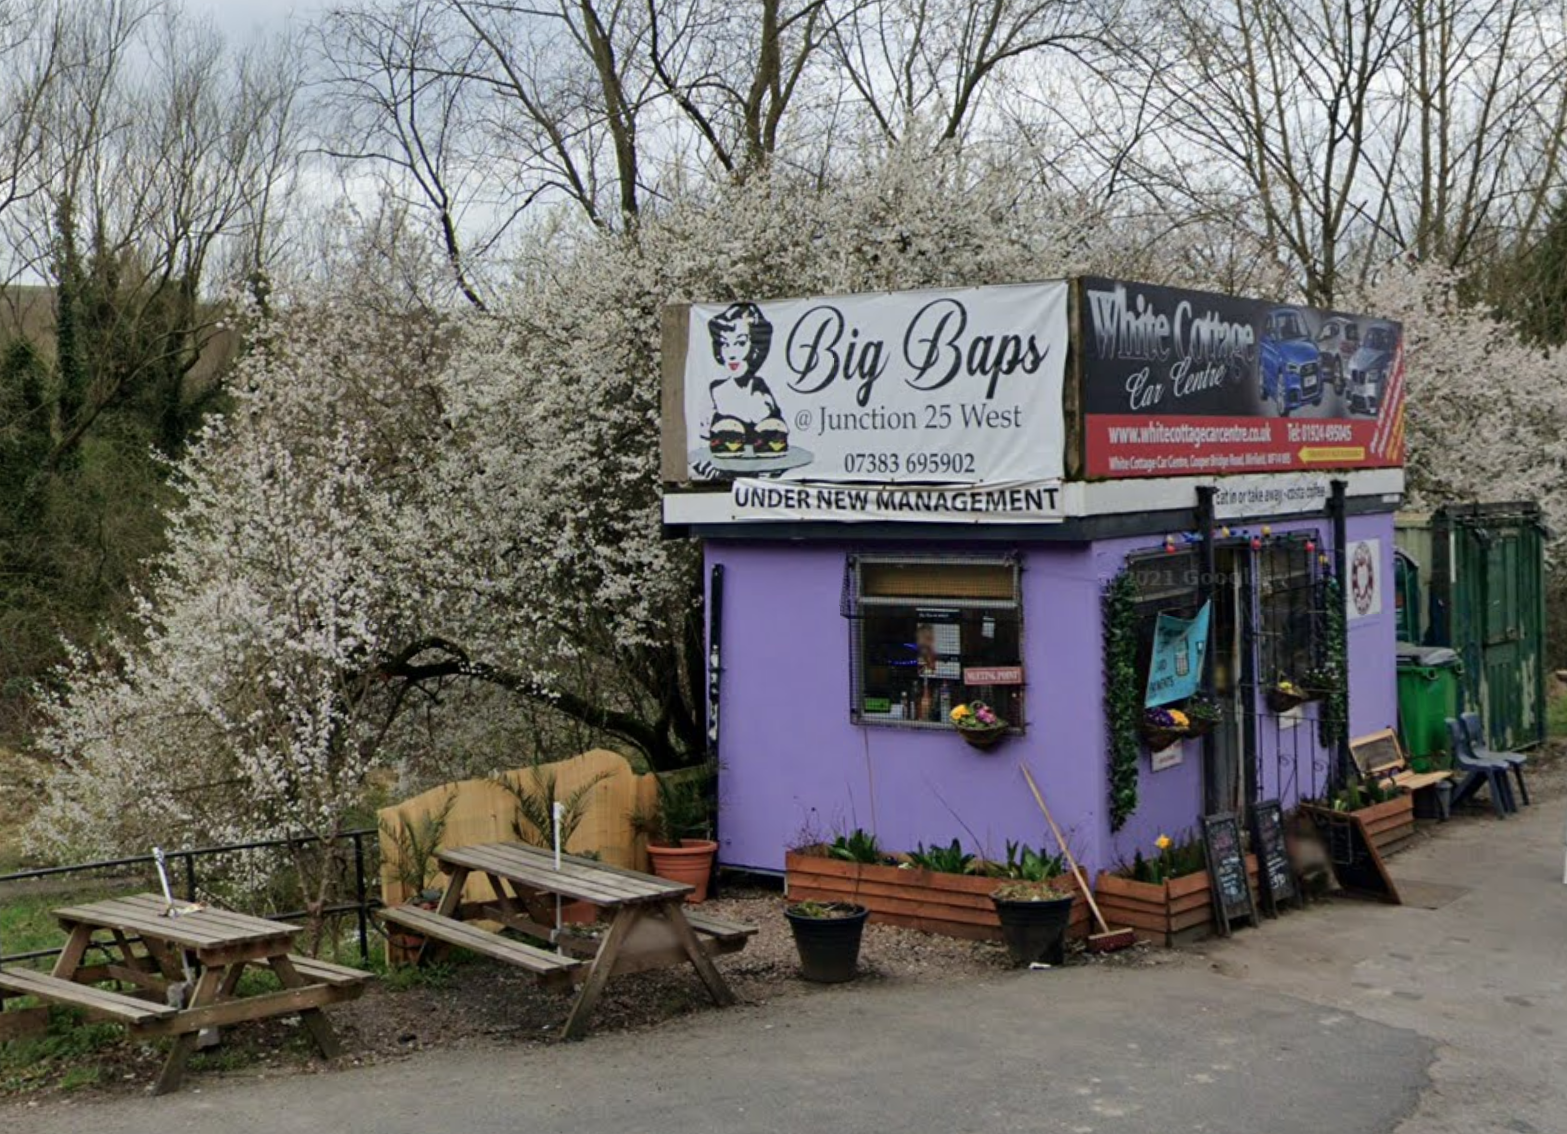 Men 'from Manchester' are having dogging parties in the bushes behind Big Baps roadside cafe, The Manc